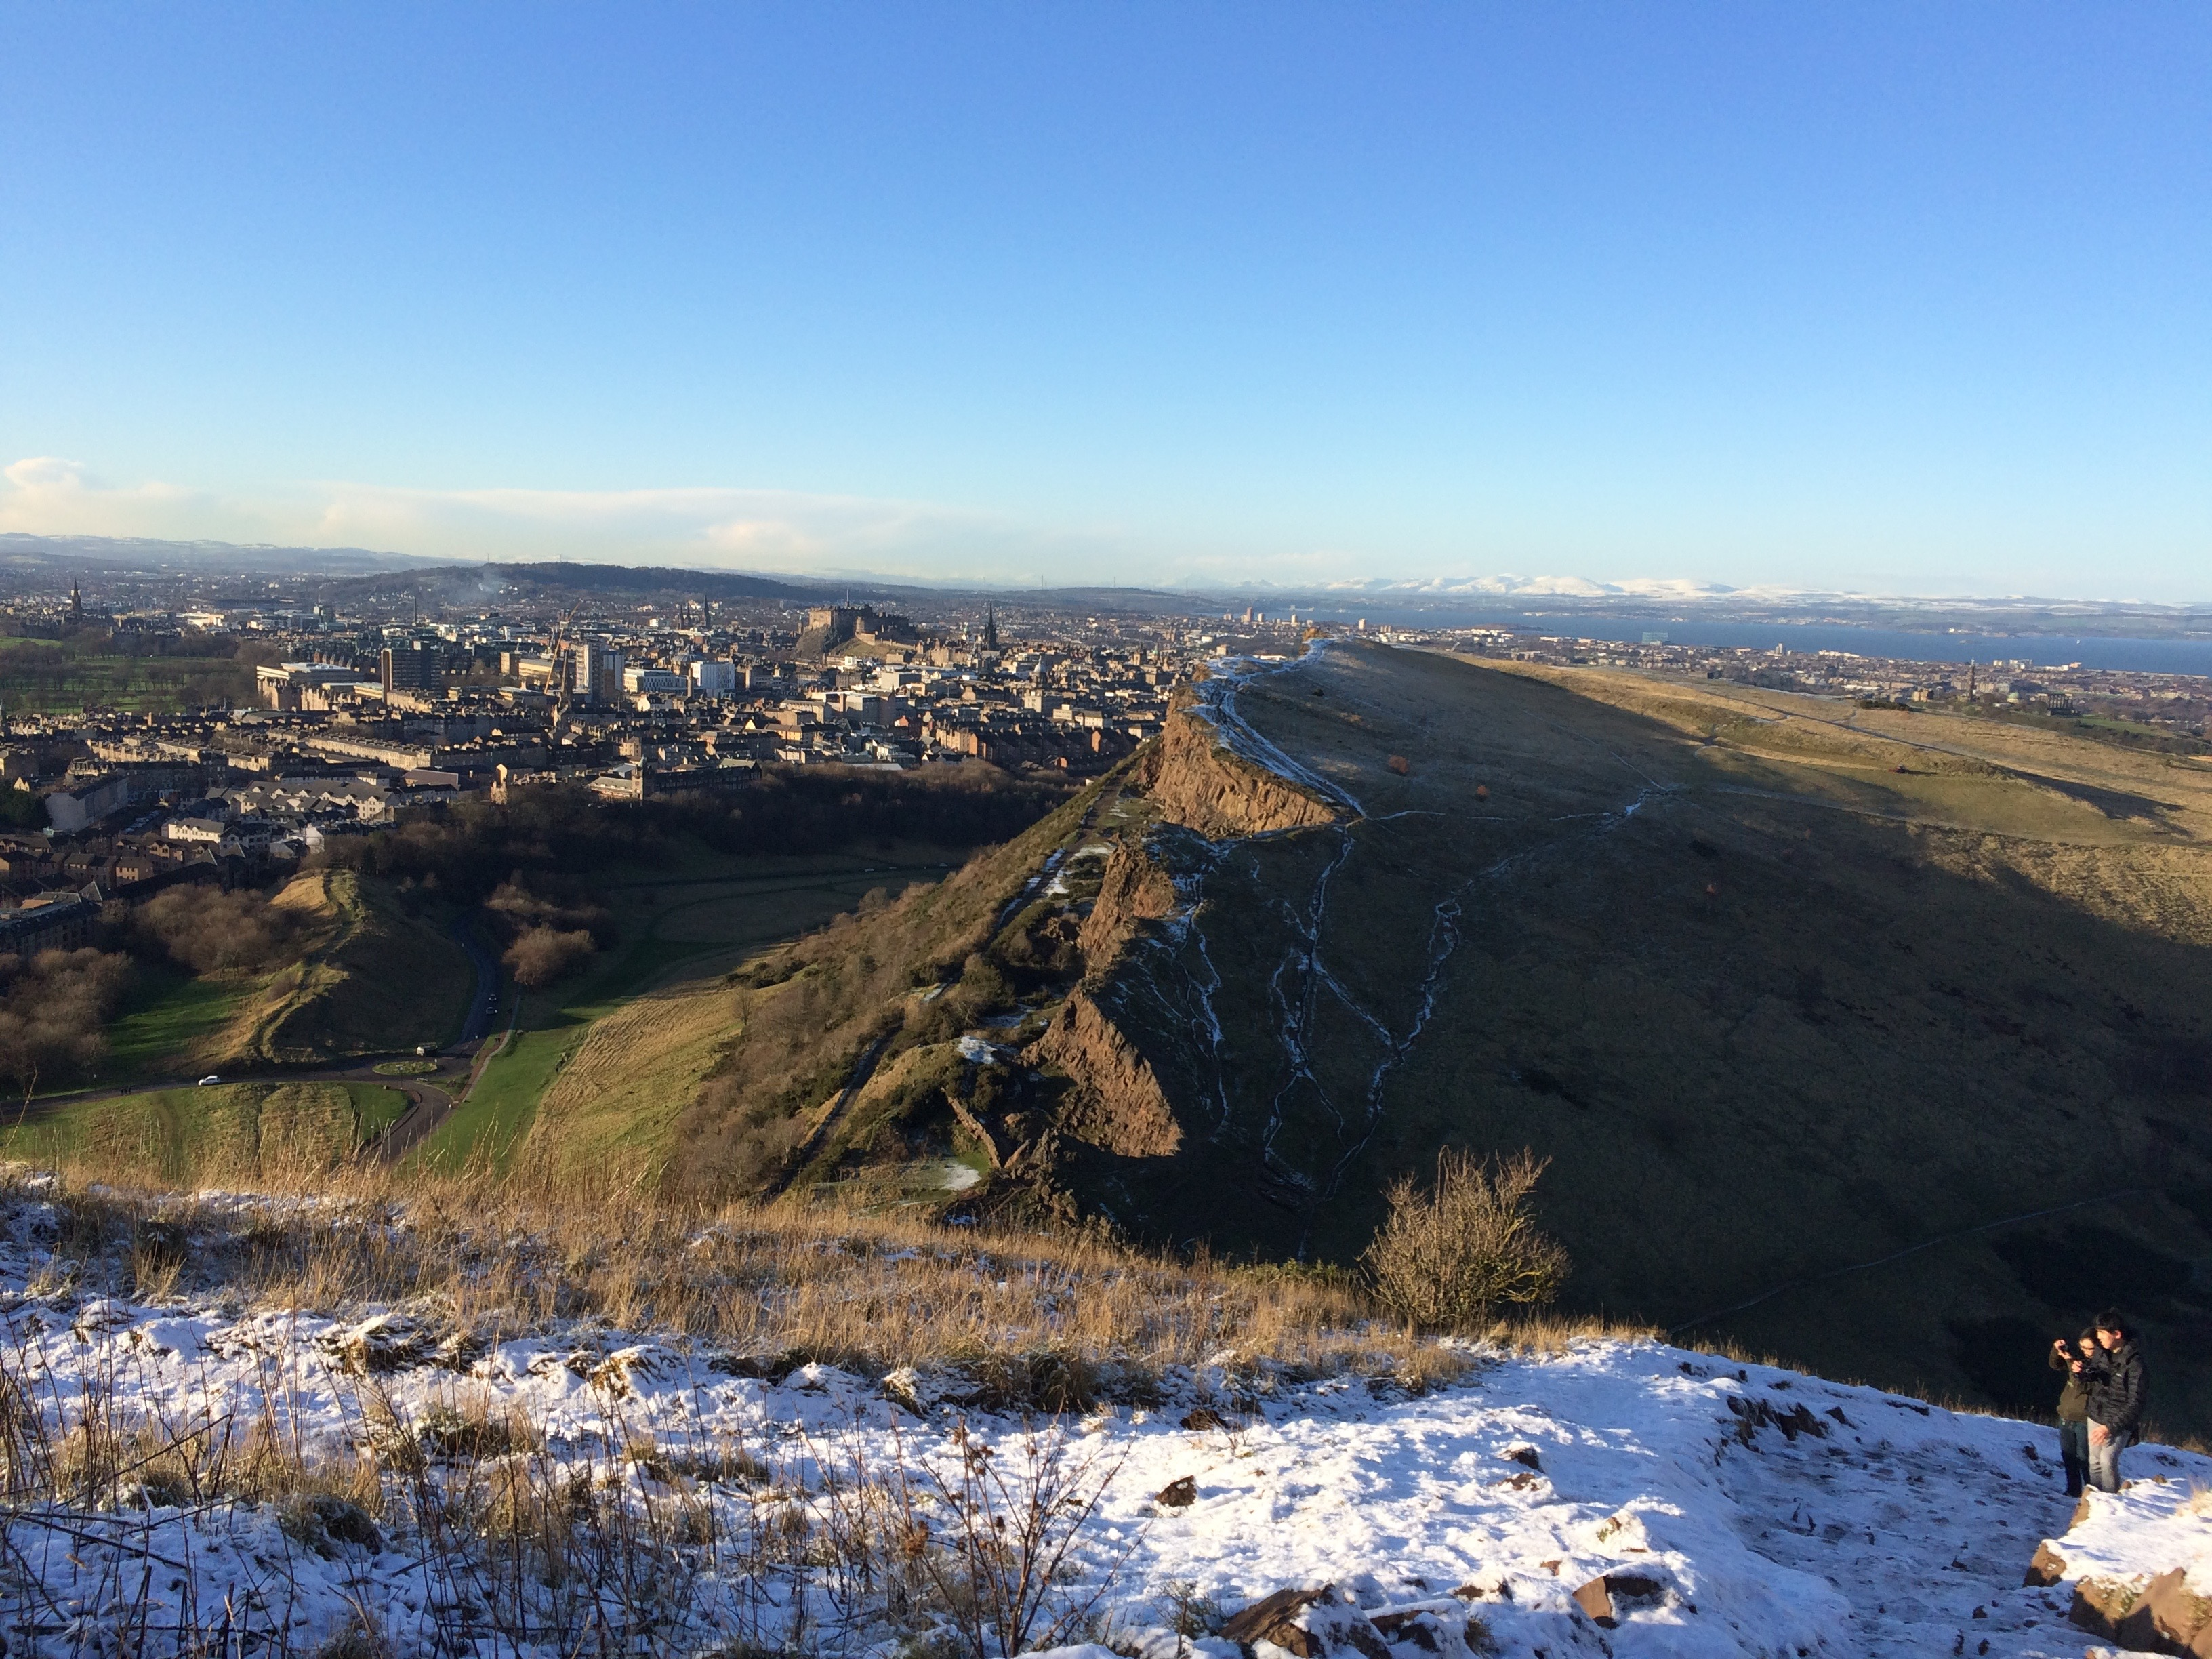 The view from Arthur's Seat